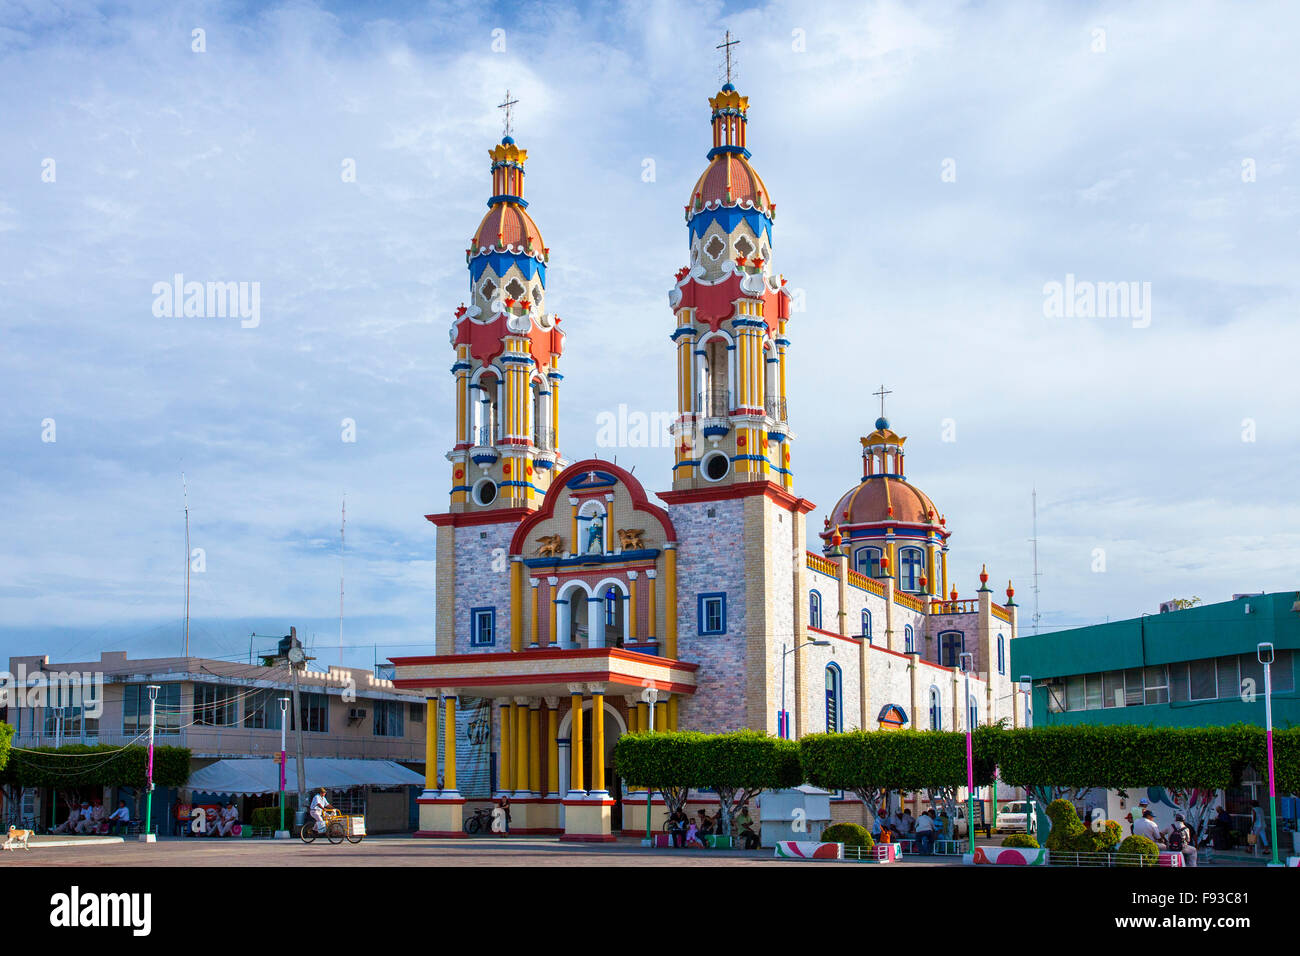 San Marcos Cathedral in Paraiso, Tabasco, Mexico. - Stock Image